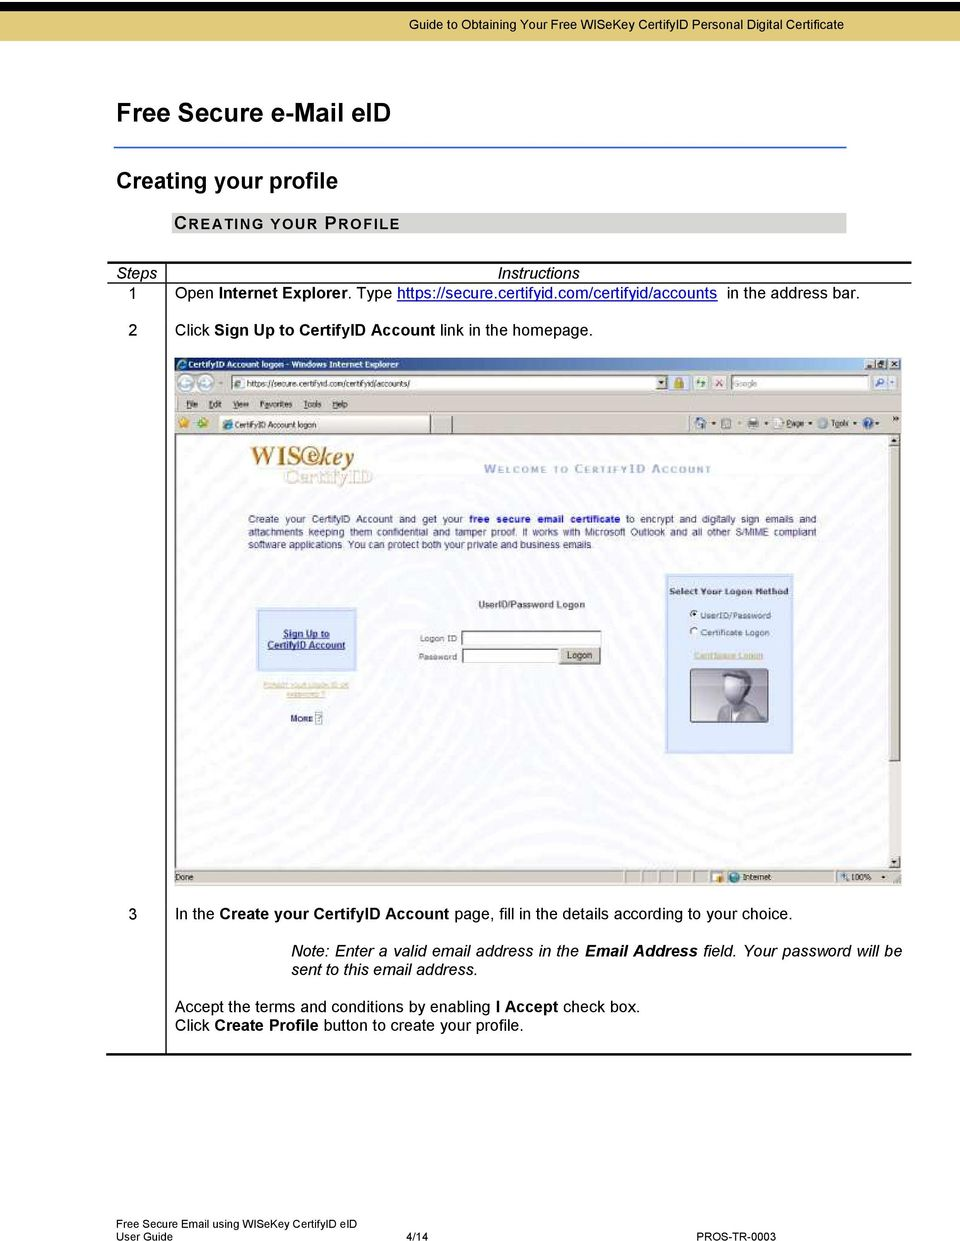 3 In the Create your CertifyID Account page, fill in the details according to your choice.